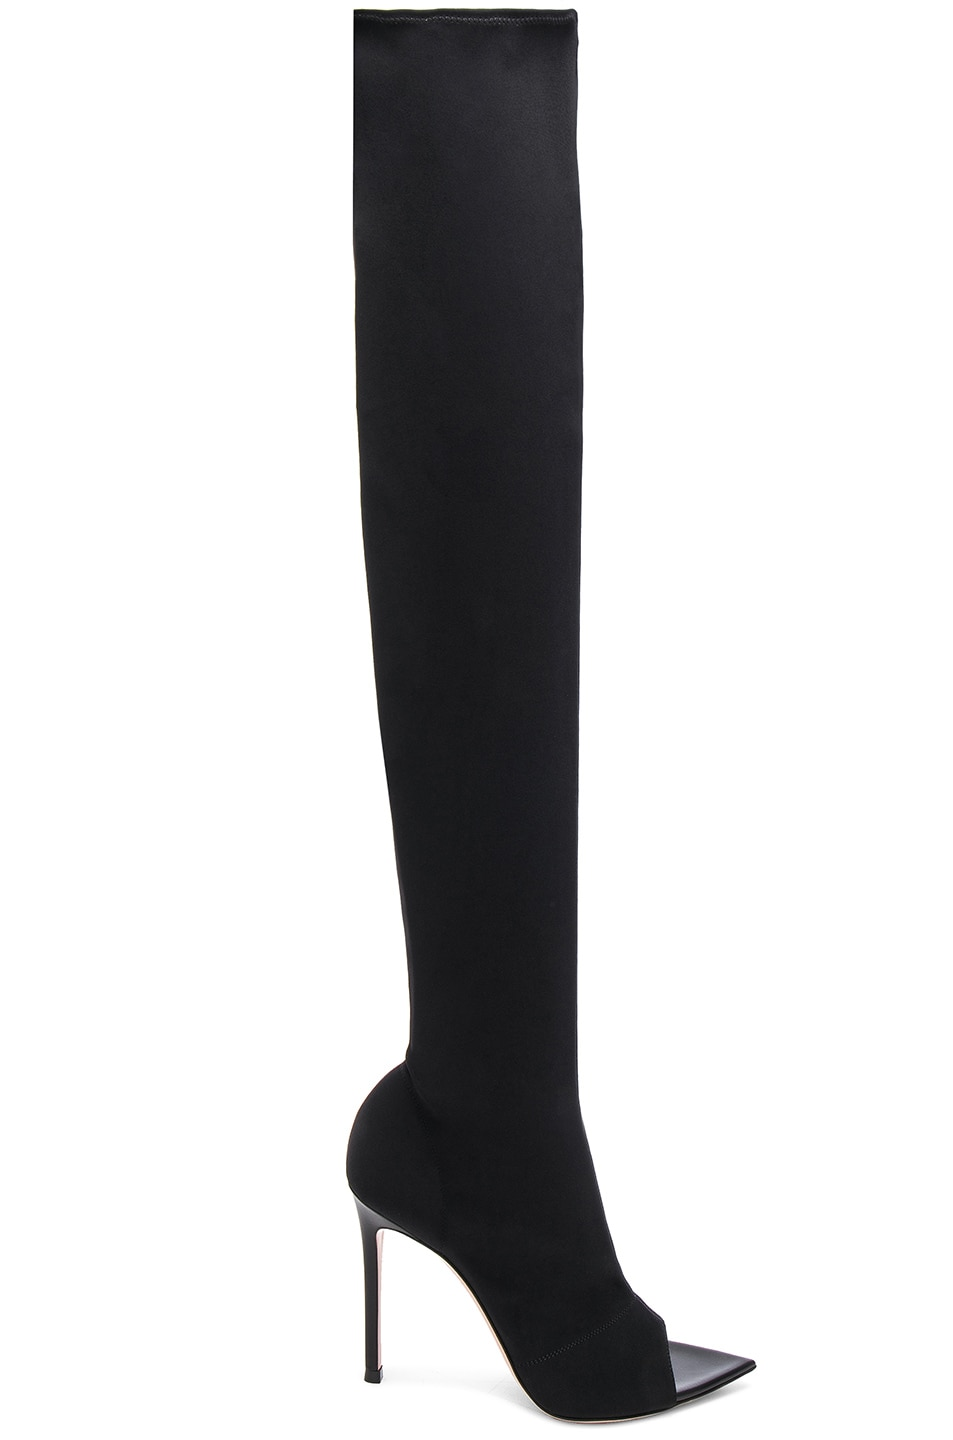 Image 1 of Gianvito Rossi Gotham Cuissard Peep Toe Thigh High Boots in Black & Black